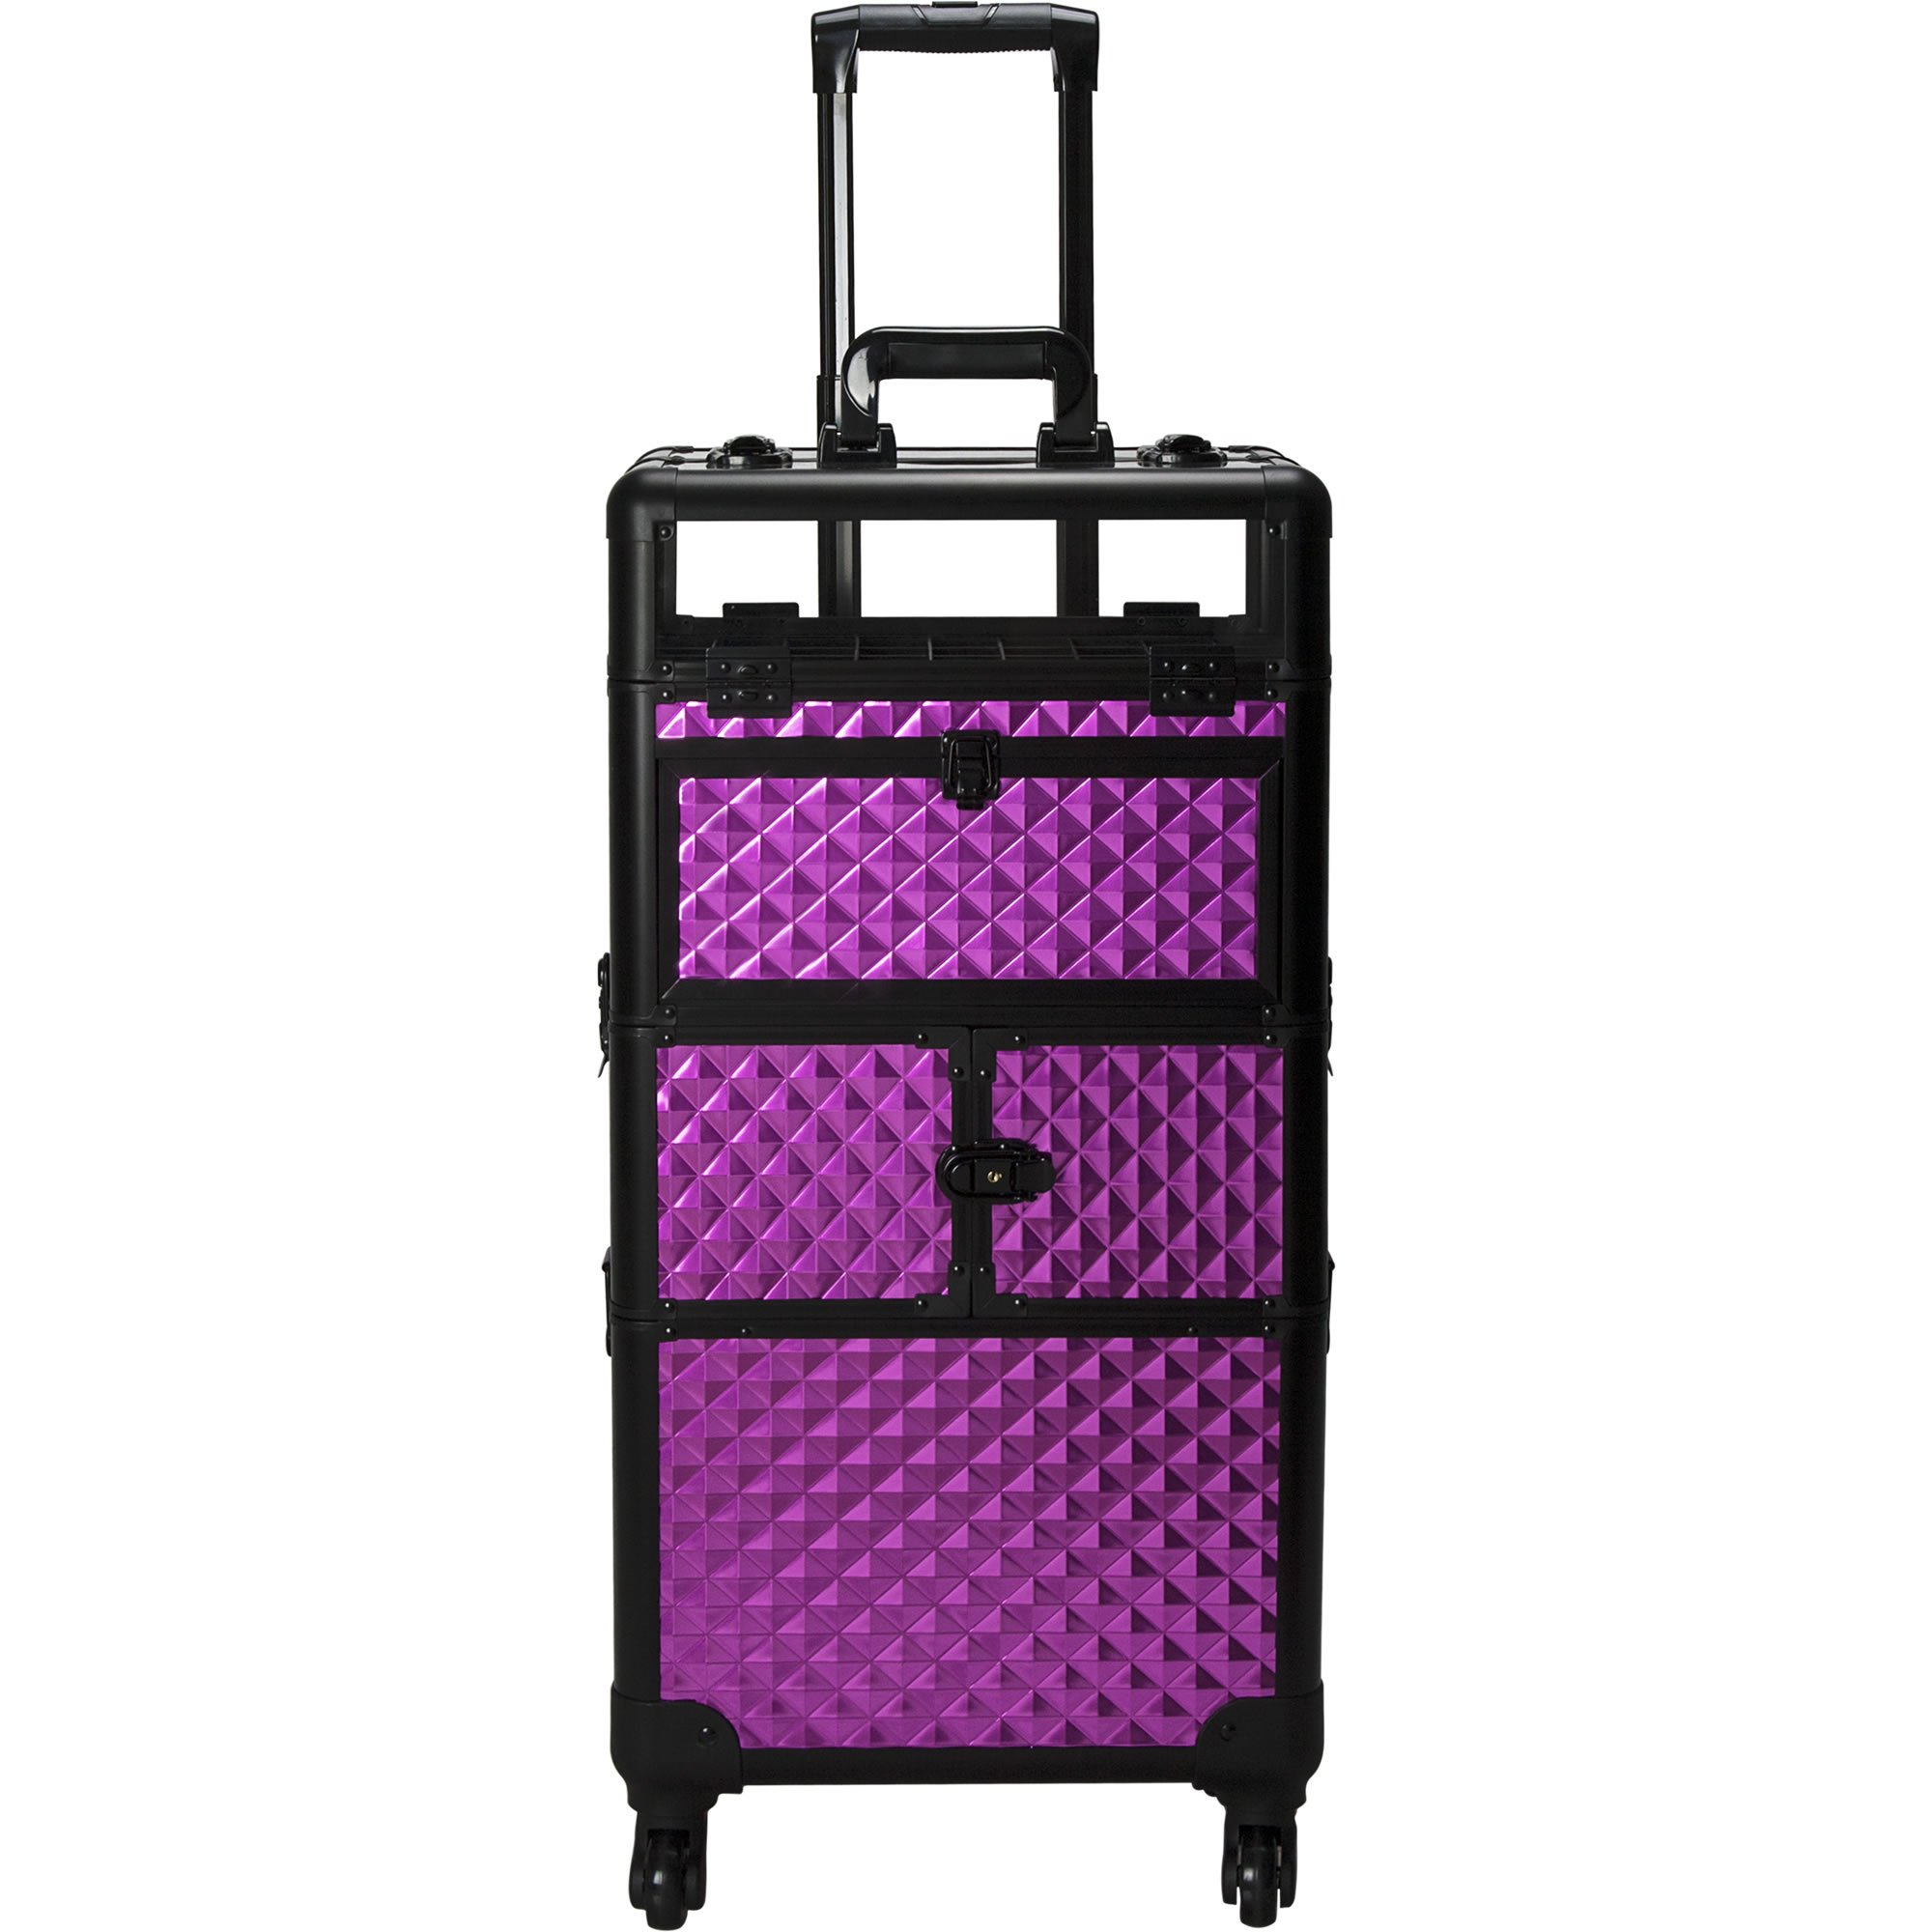 SUNRISE Nail Case on Wheels 2 in 1 I31064 Professional Organizer, 54 Bottle Capacity, 6 Trays, 4 Wheel Spinner, Locking with Mirror and Shoulder Strap, Purple Diamond